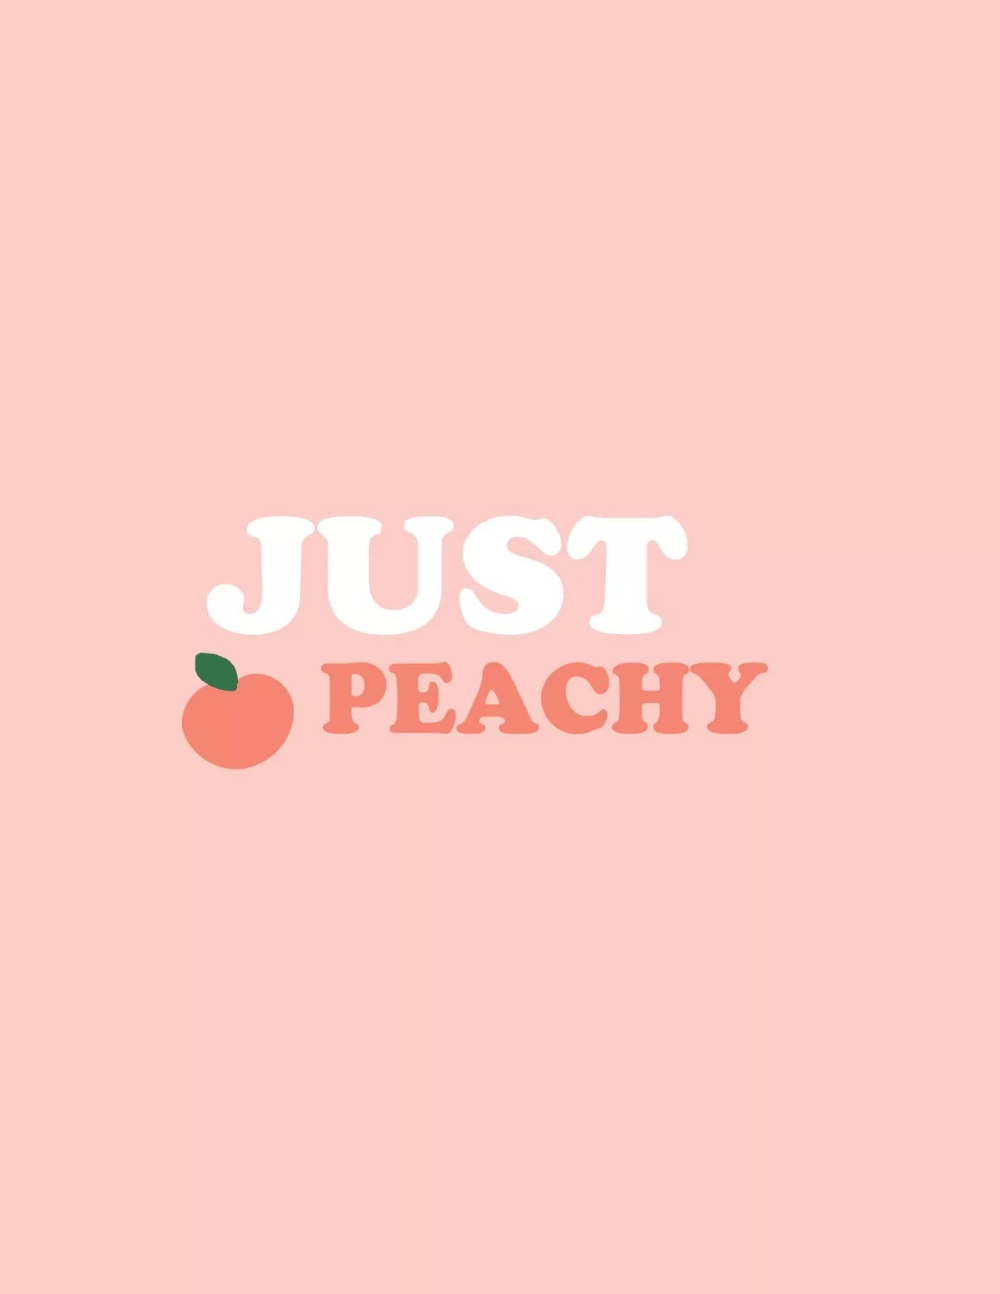 Just Peachy Printable A Bubbly Life Peach Wallpaper Aesthetic Pastel Wallpaper Just Peachy